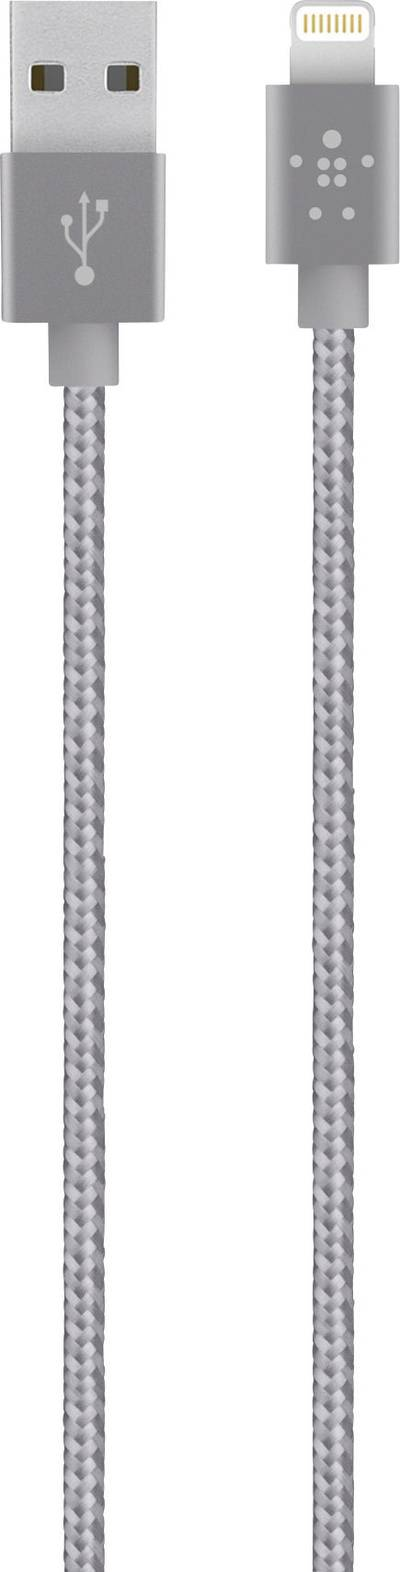 Compare cheap offers & prices of Belkin Premium Tangle-free Braided Lightning To Usb Charge And Sync Cable With Aluminium Connectors For iPhone iPad And iPod In Grey manufactured by Belkin